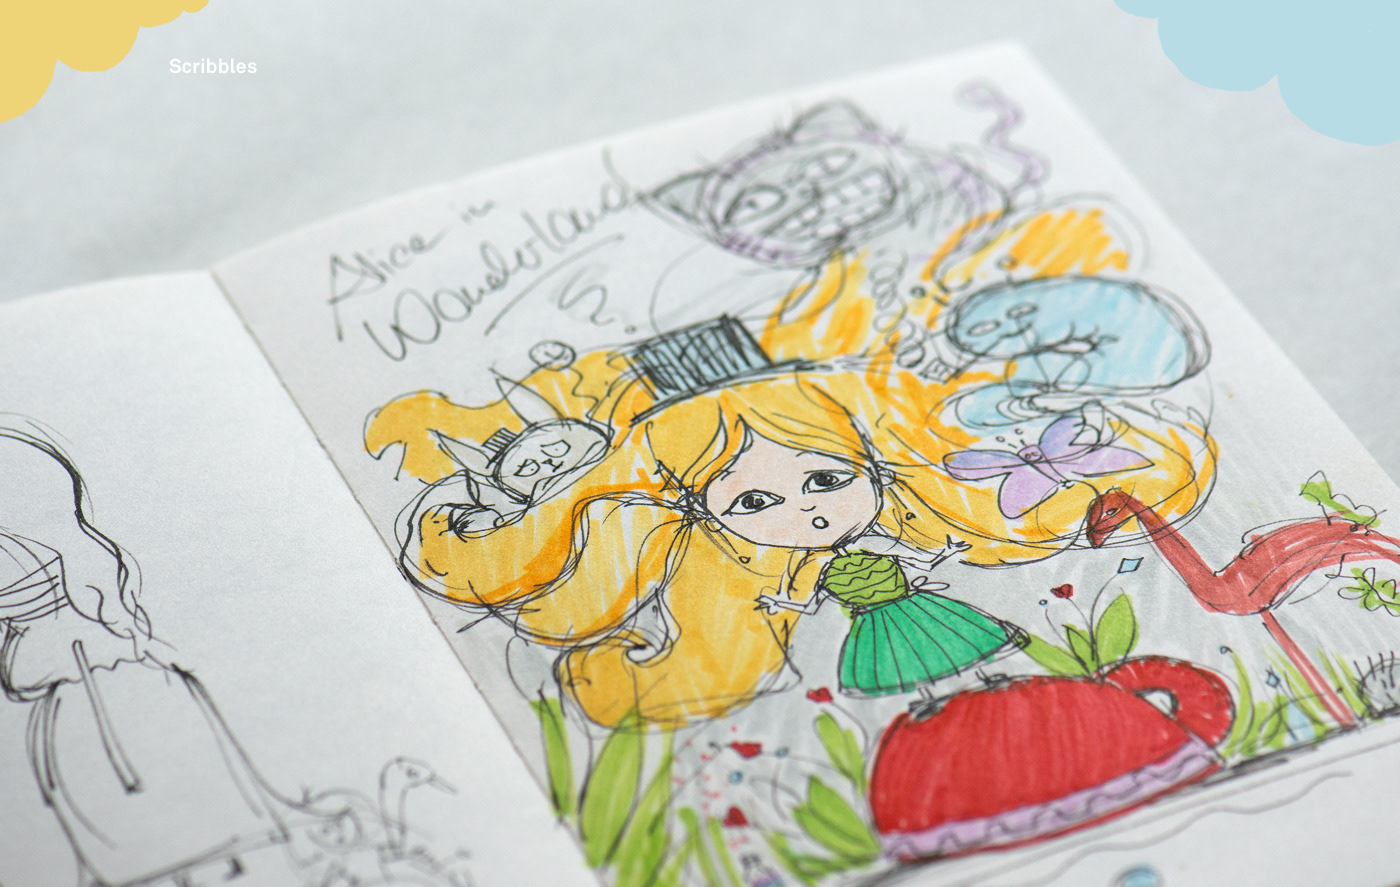 clay polymer clay fimo sketch sketchbook Kidsbook cover alice in wonderland ILLUSTRATION  mixed media